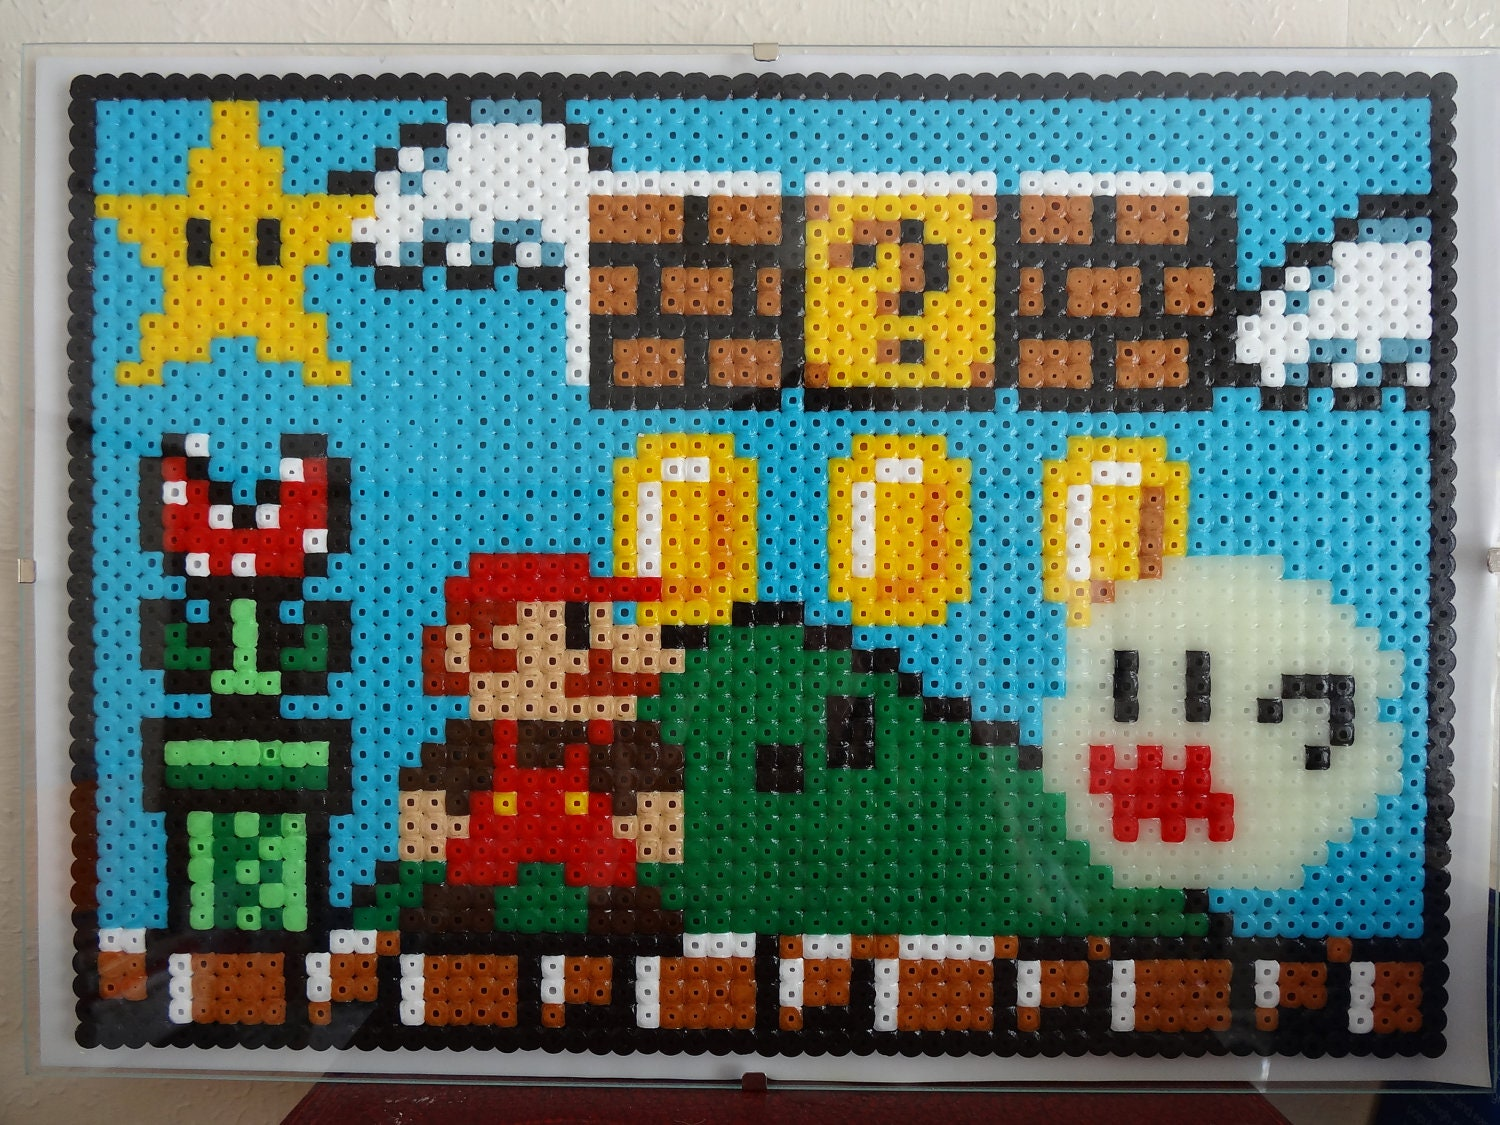 Super stylish mario platform glow in the dark pixel art zoom pronofoot35fo Image collections